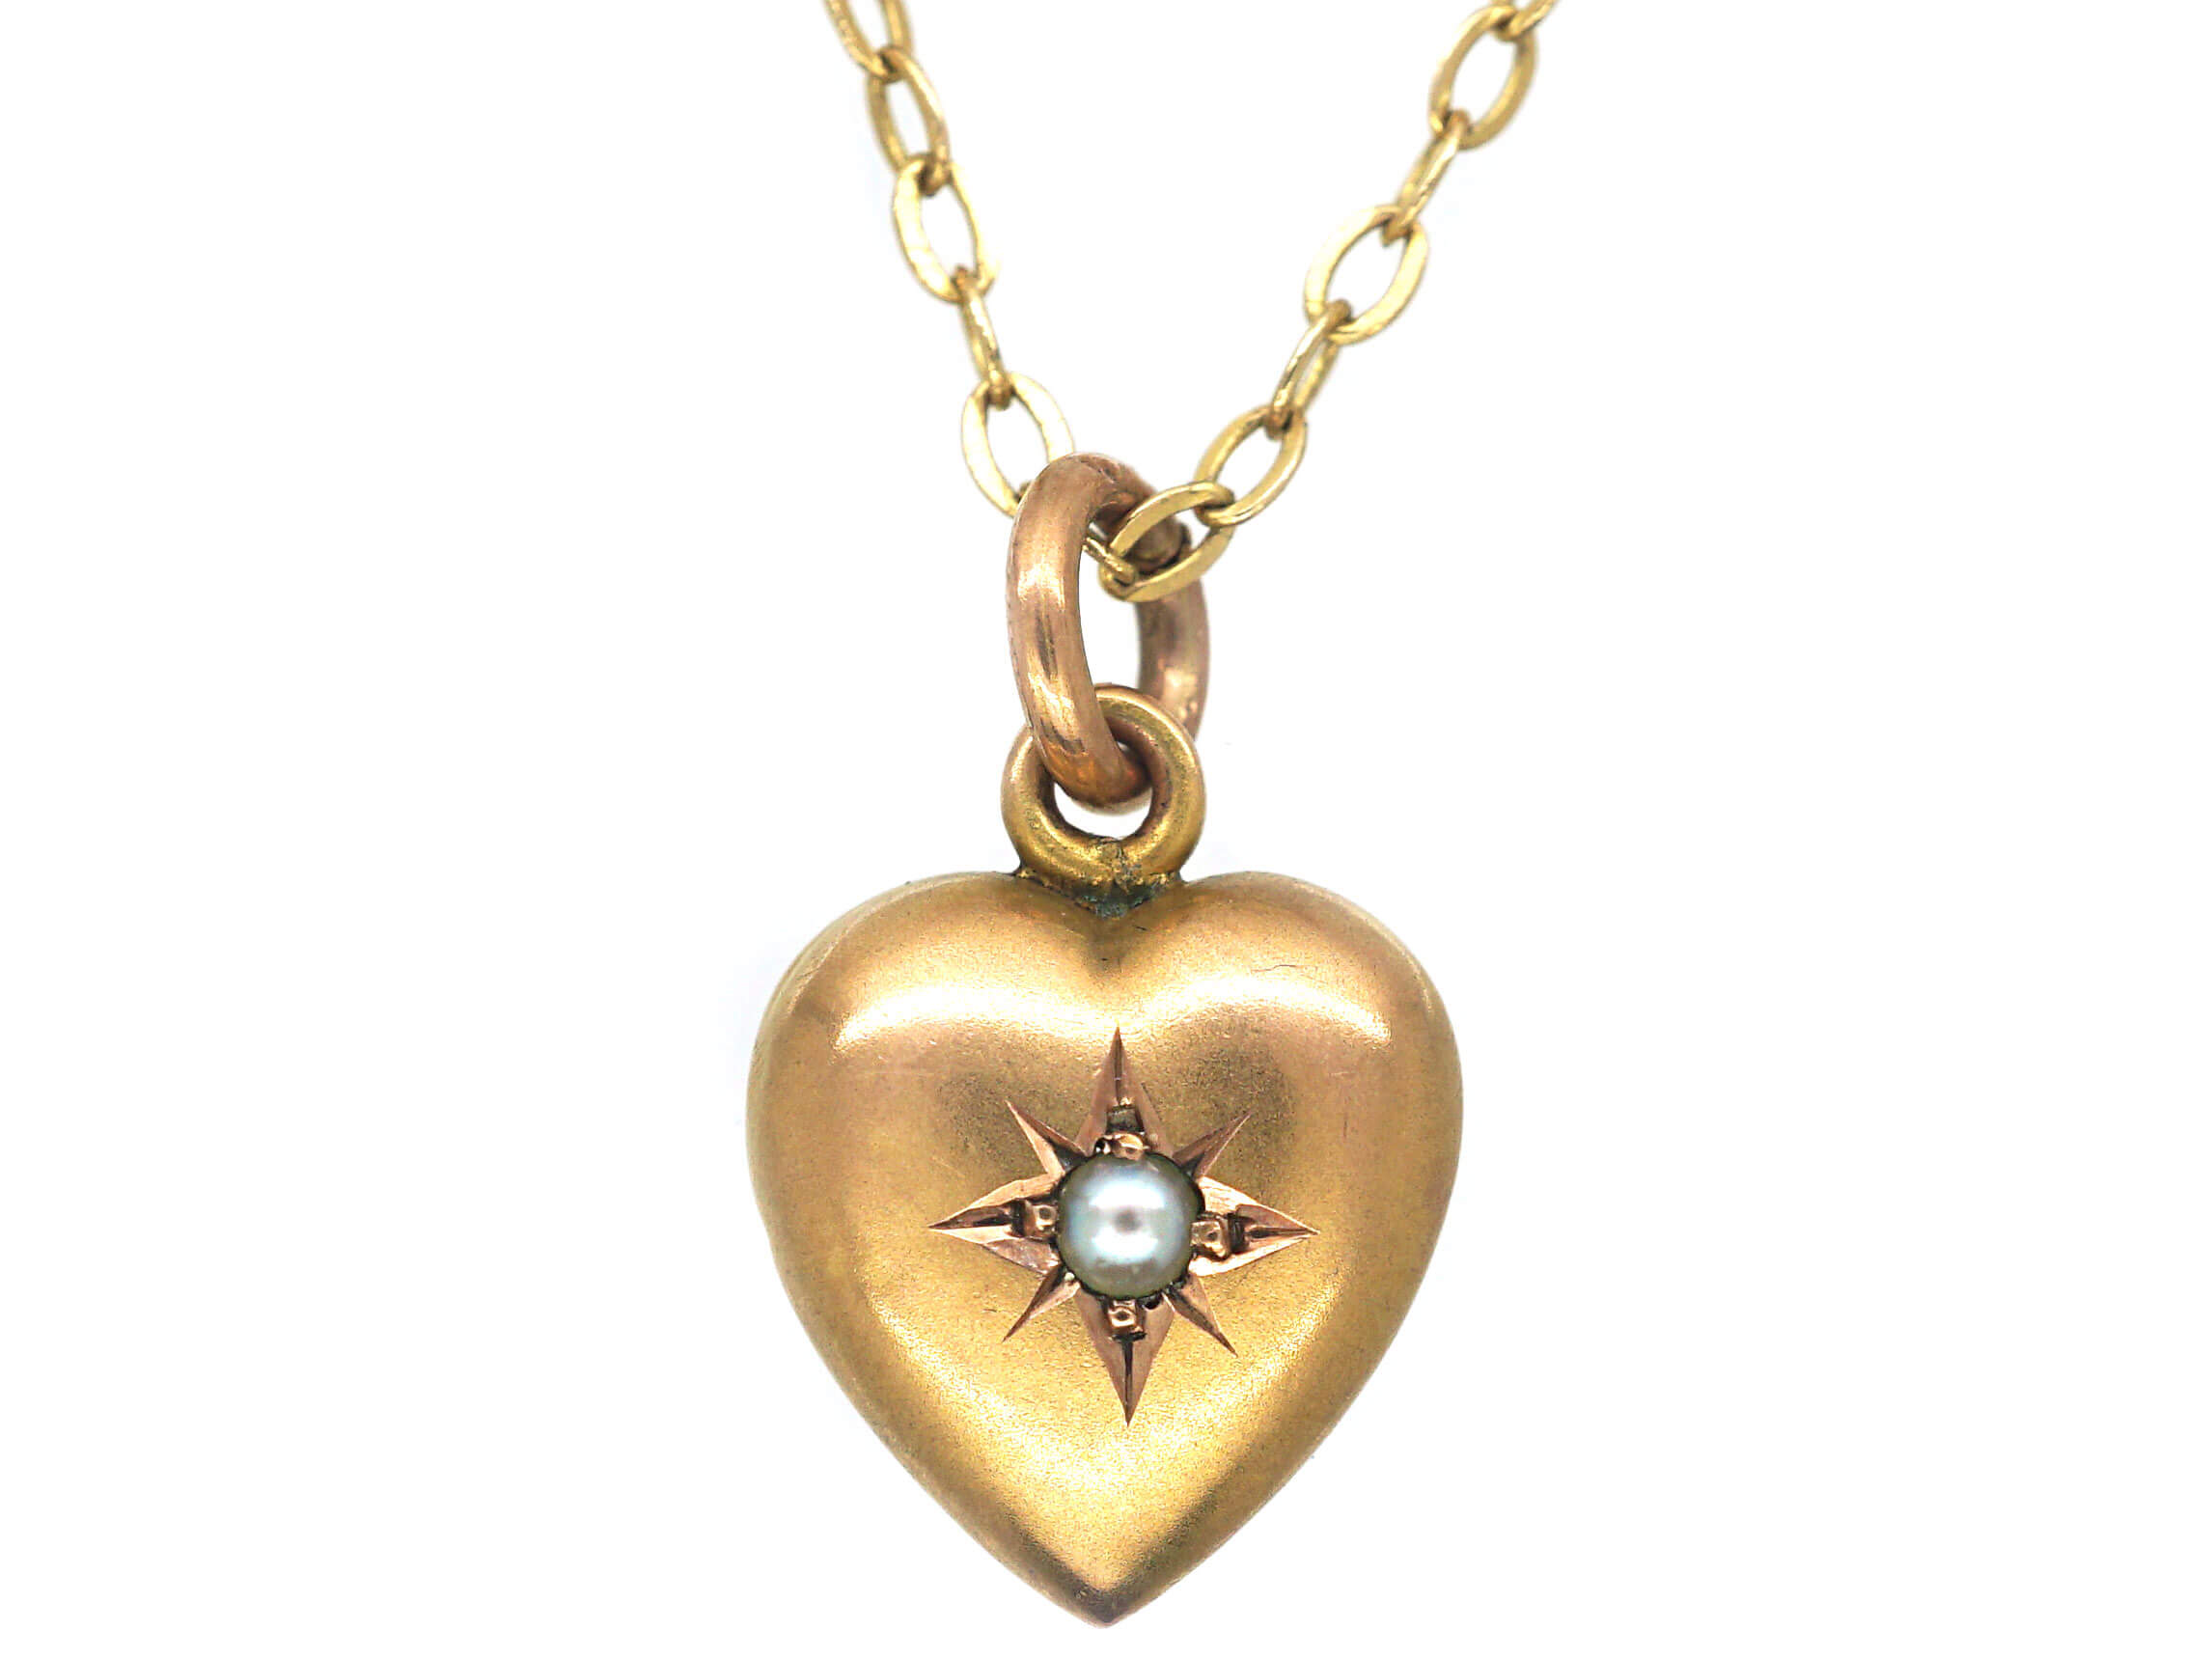 Edwardian 9ct Gold Heart Shaped Pendant set with a Natural Split Pearl on a 9ct Gold Chain